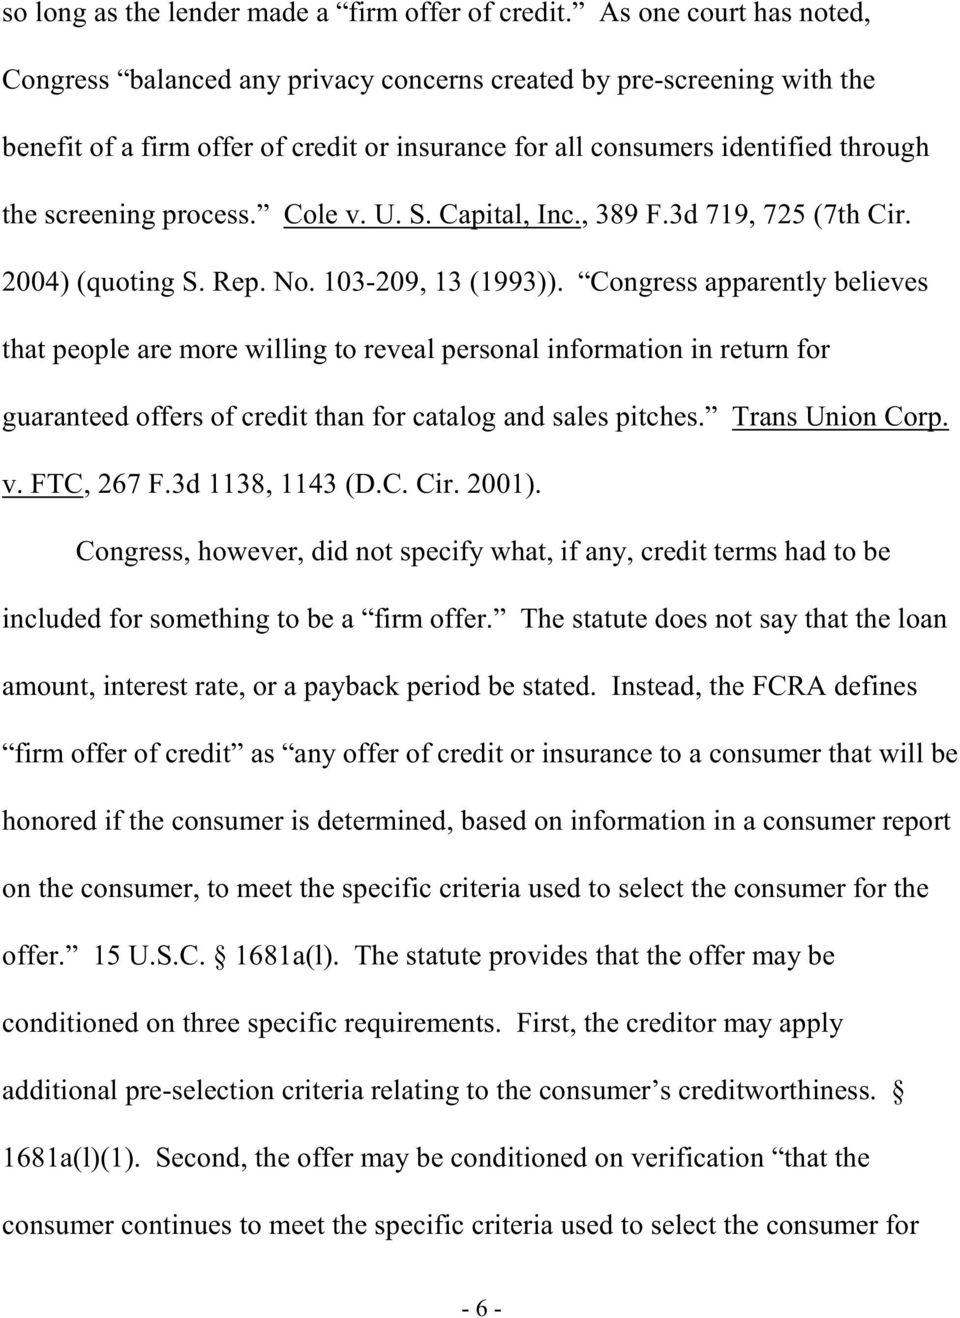 process. Cole v. U. S. Capital, Inc., 389 F.3d 719, 725 (7th Cir. 2004) (quoting S. Rep. No. 103-209, 13 (1993)).